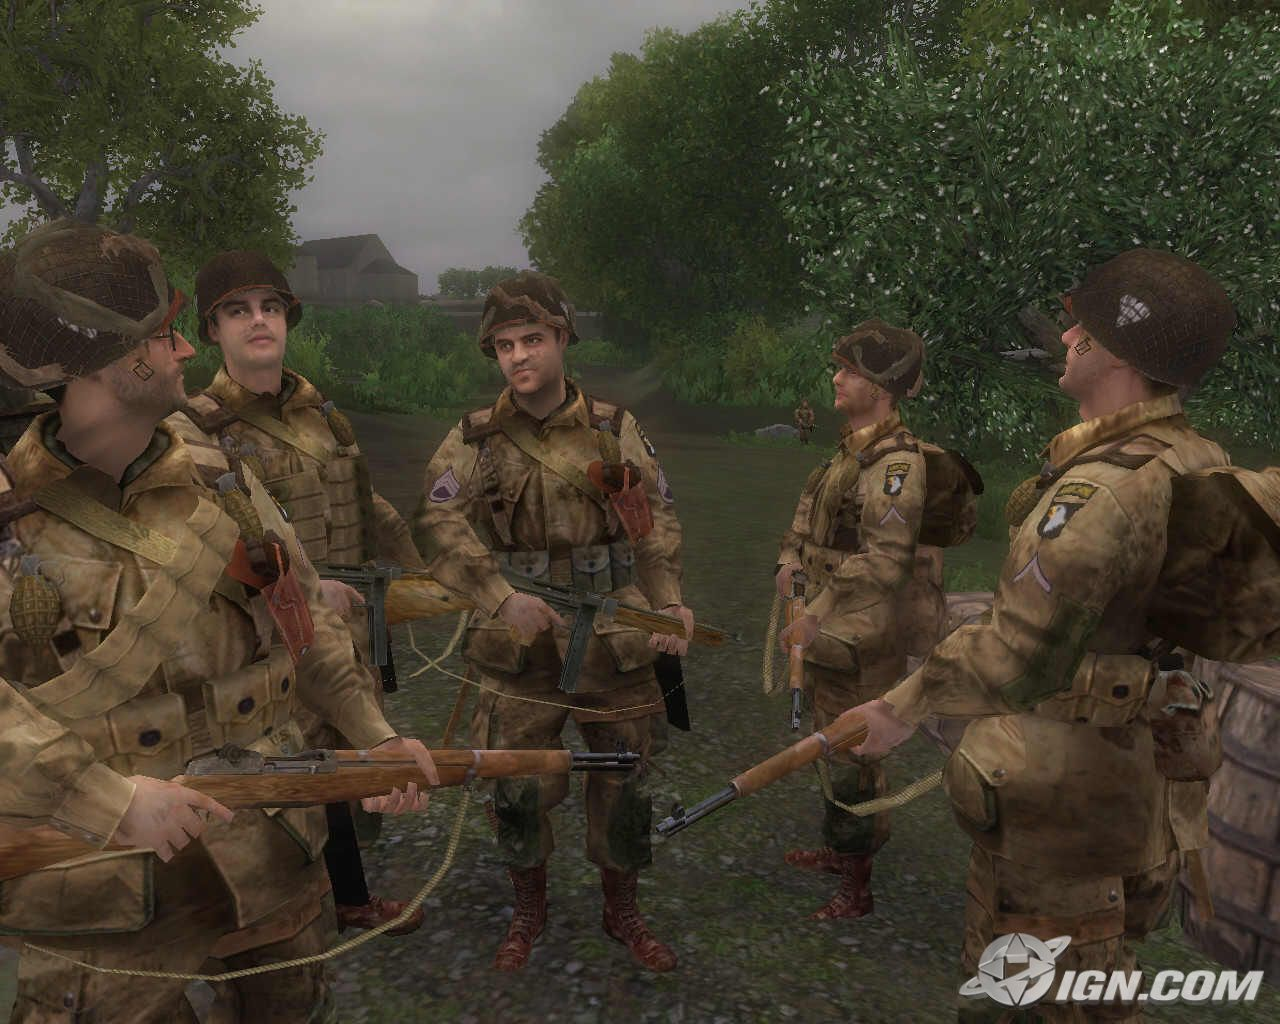 http://megagames.com/sites/default/files/game-content-images/brothers-in-arms-road-to-hill-30_2.jpg